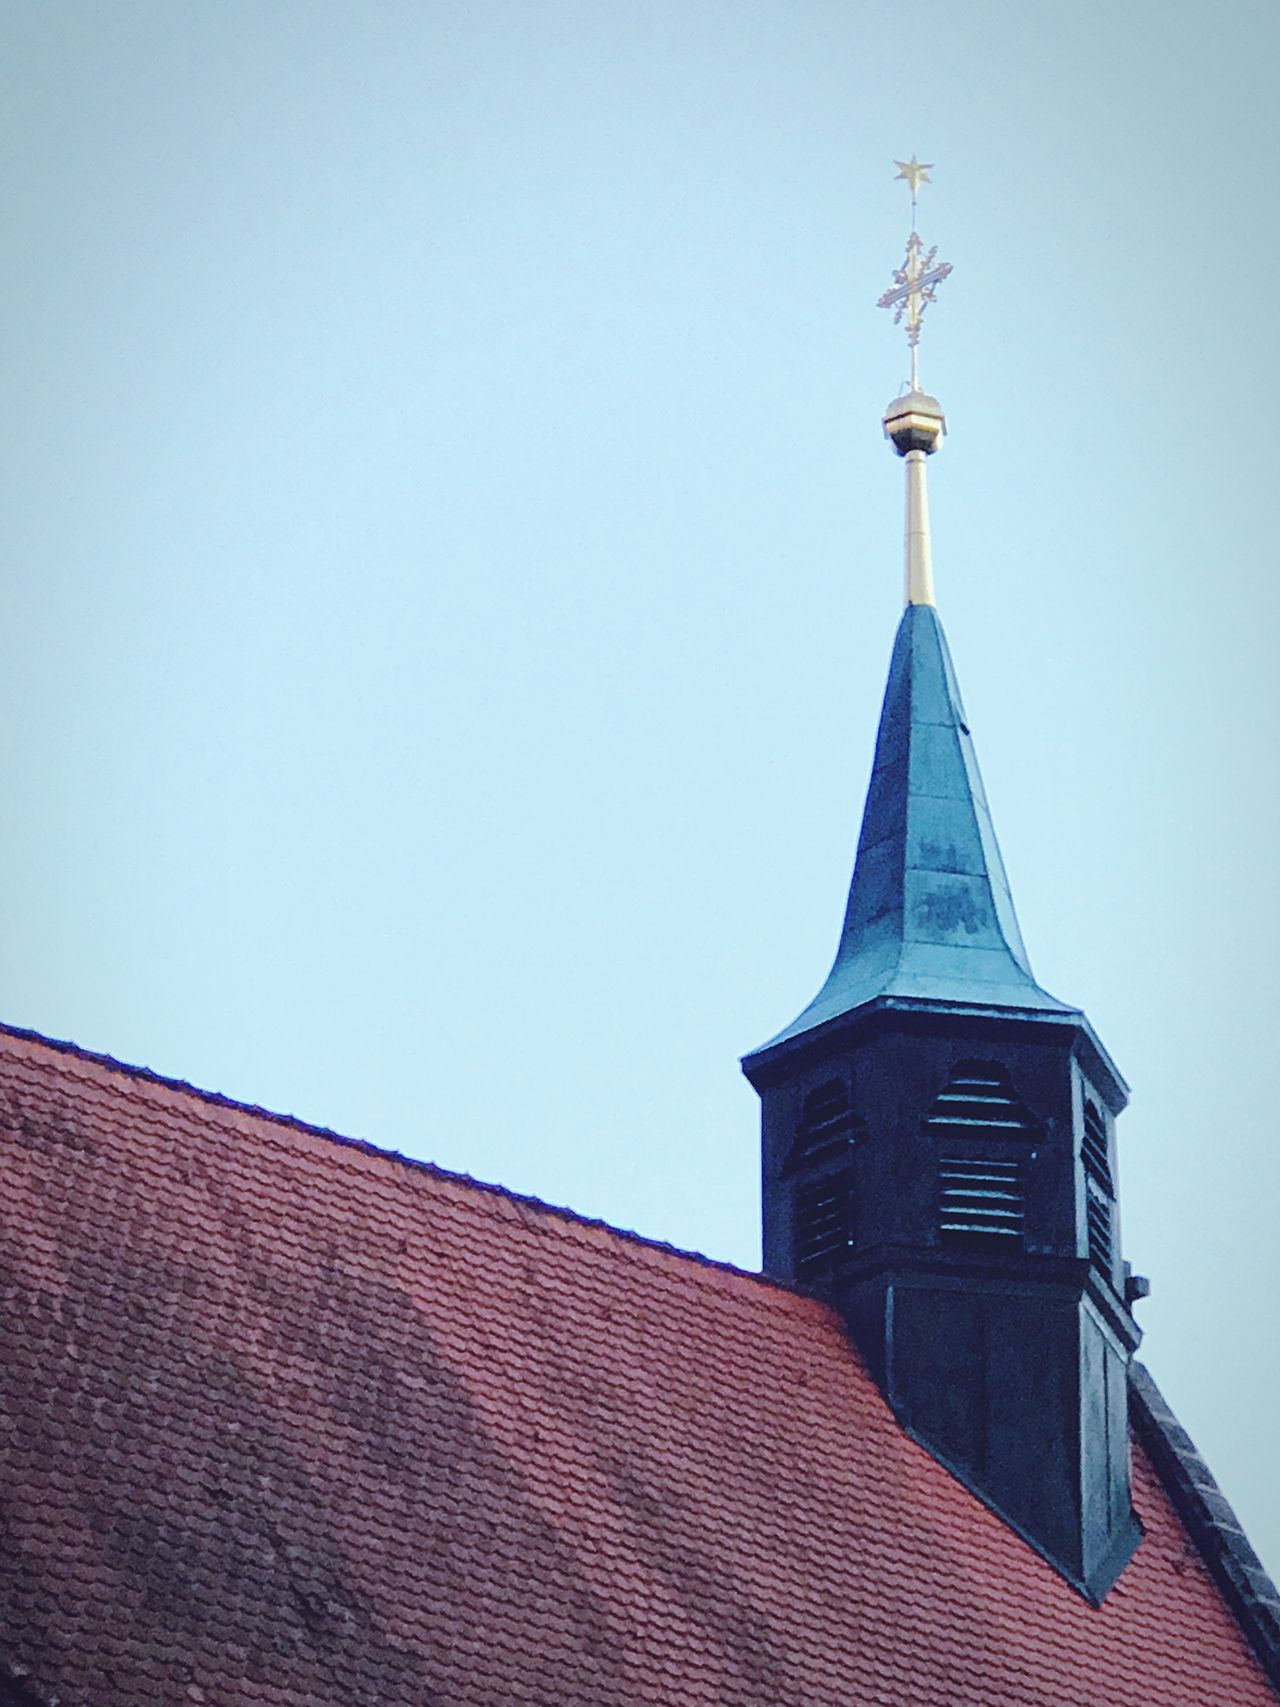 EyeEm Selects Architecture Low Angle View Building Exterior Clear Sky Outdoors Weather Vane Sky Church Church Architecture Travel Europe Trip EyeEmNewHere Germany🇩🇪 GERMANY🇩🇪DEUTSCHERLAND@ No People Tall - High Scenics Religious Architecture Place Of Worship Kellersberg